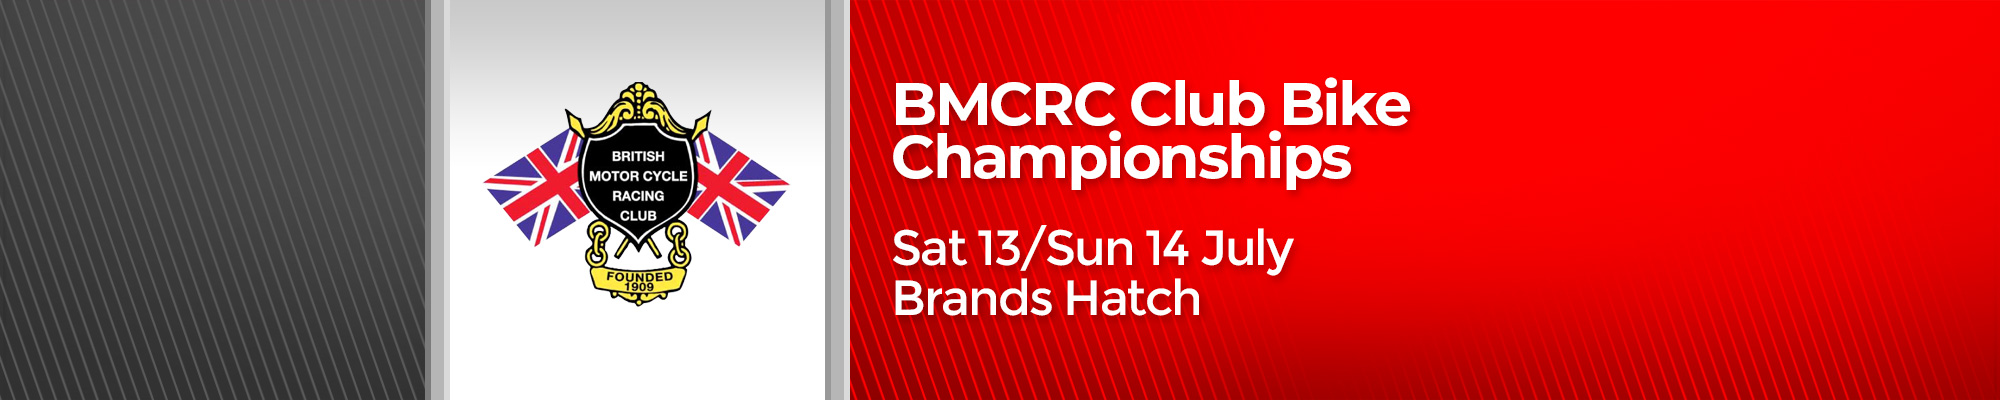 BMCRC Club Bike Championships